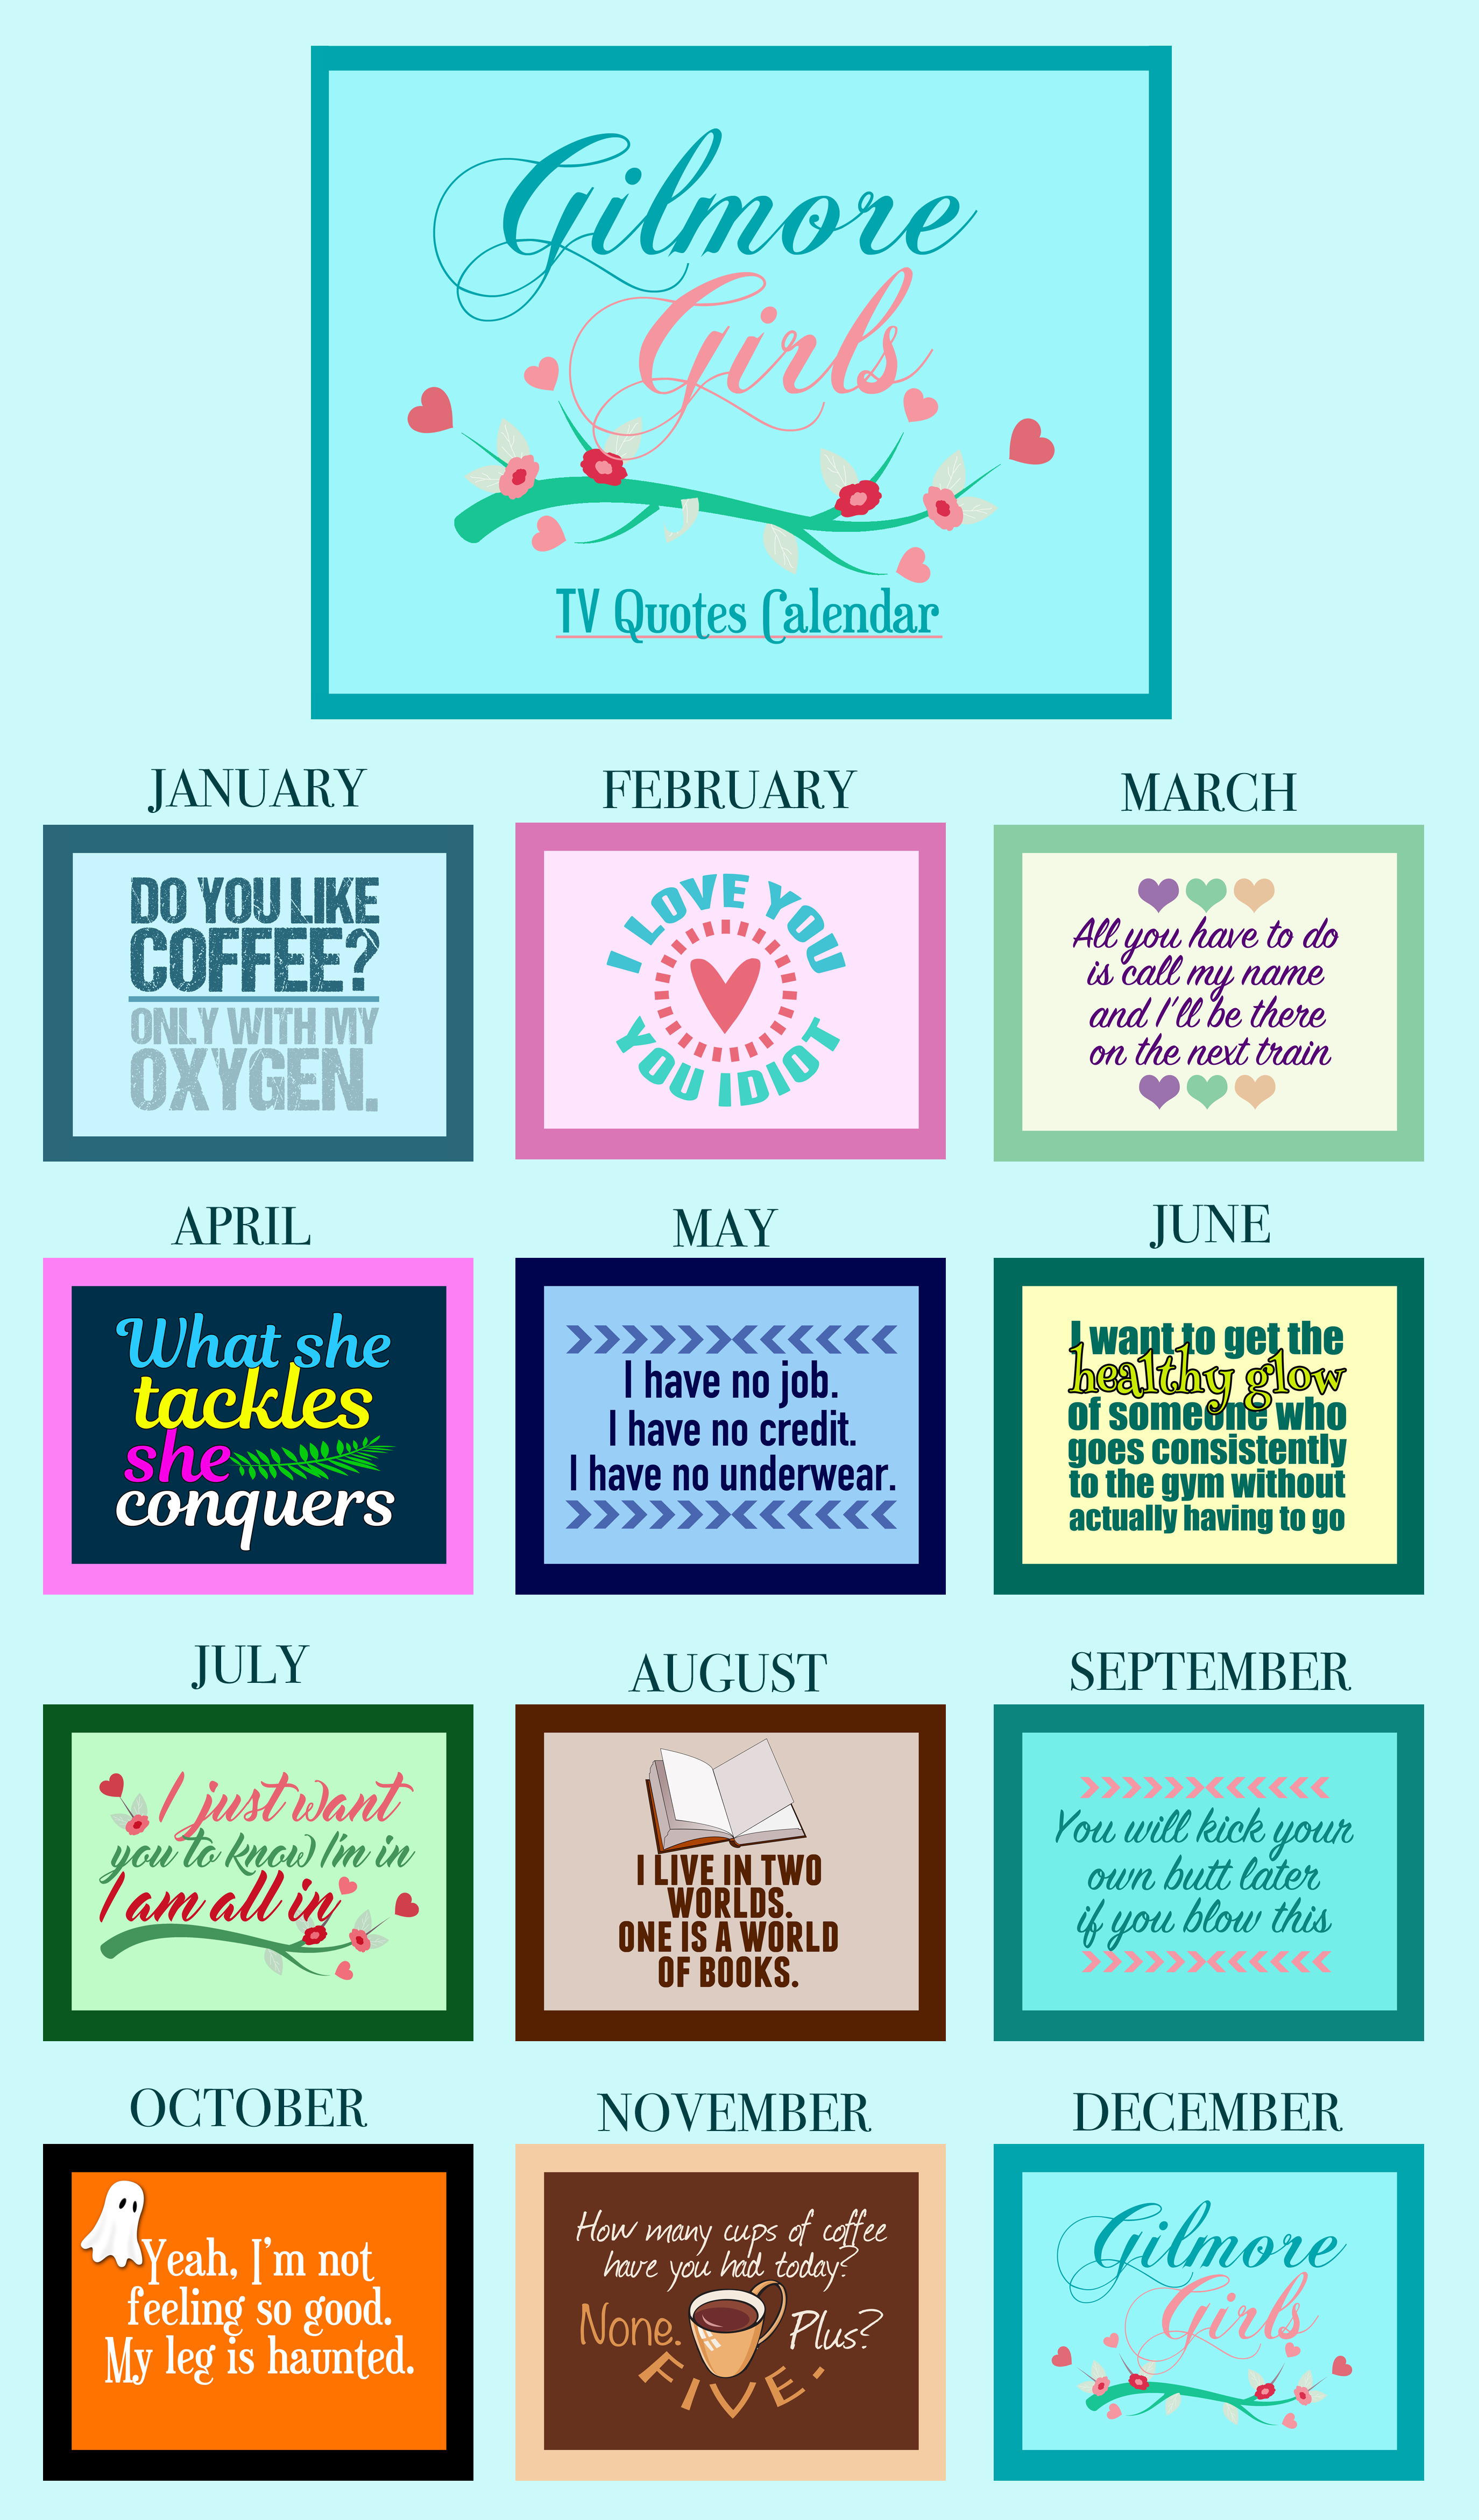 Gilmore Girls 2018 TV Quotes Calendar: Order now for a great ...